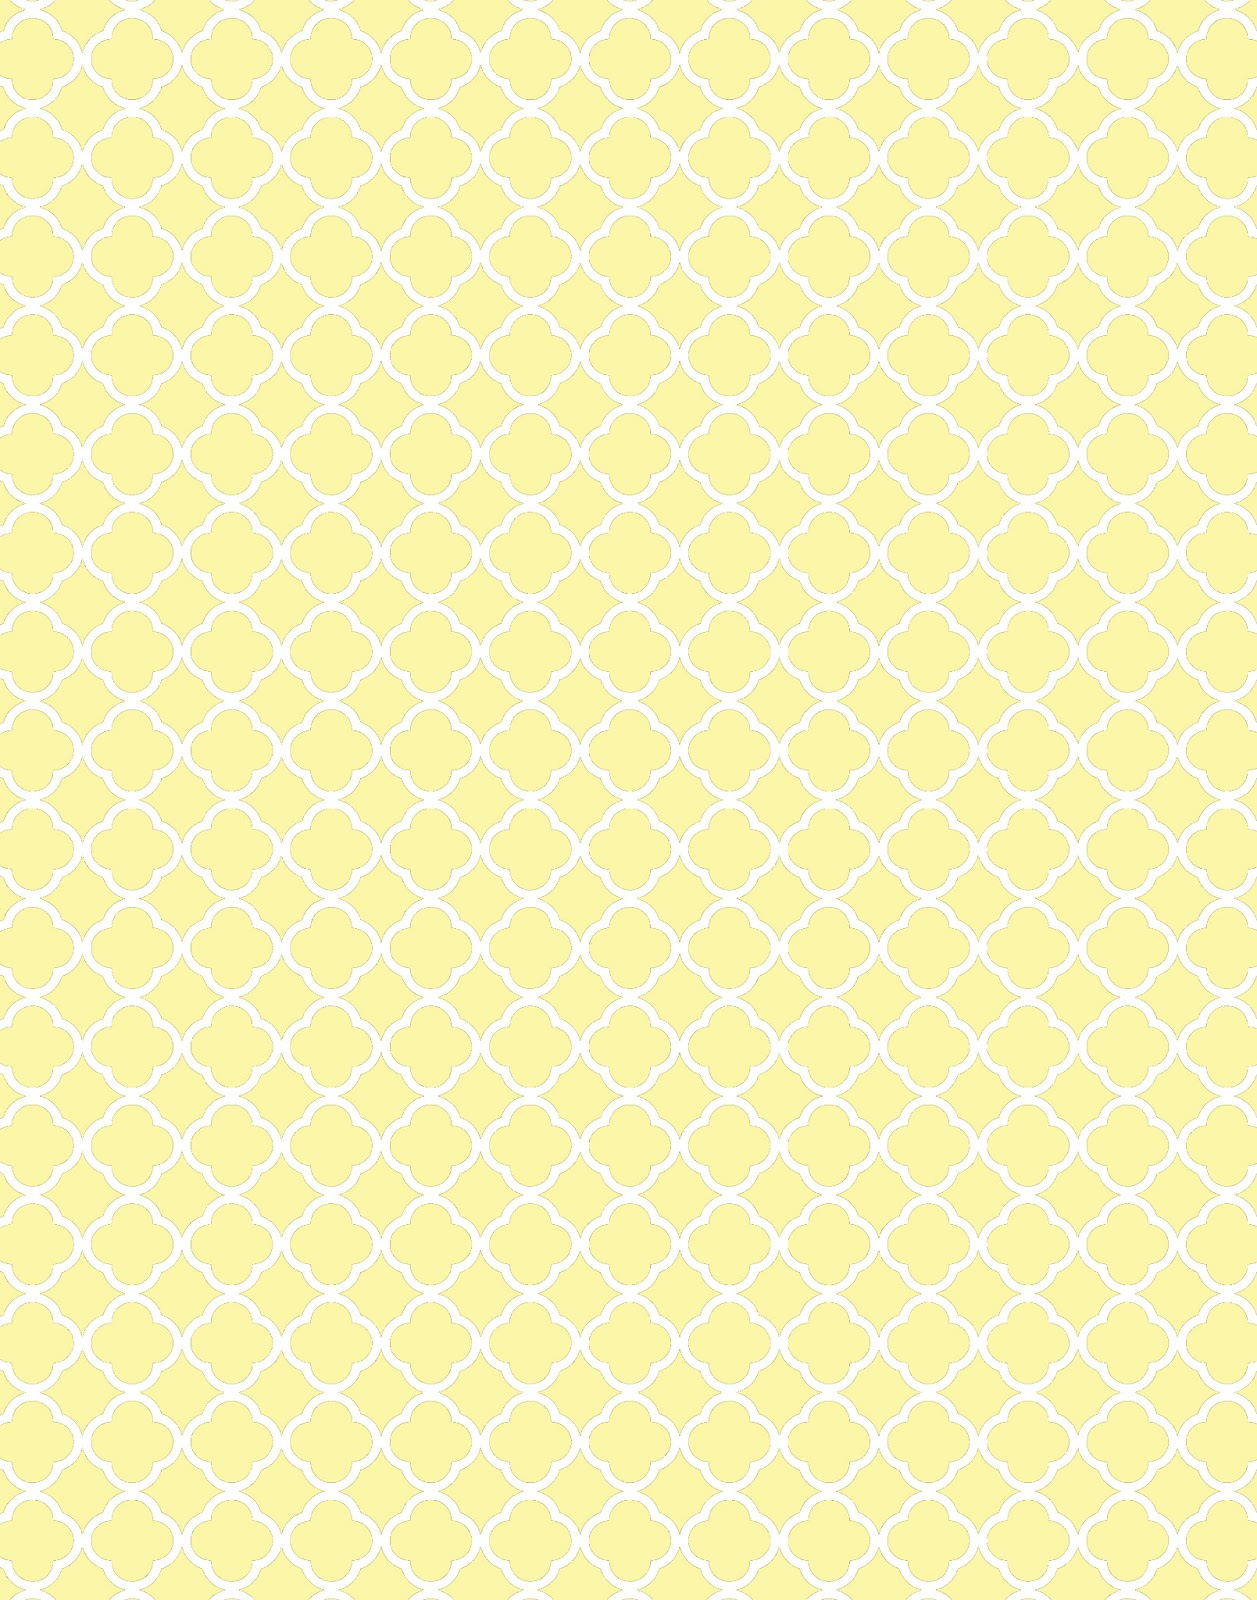 Light Yellow Chevron Backgrounds 3 quatrefoil backgrounds 1257x1600